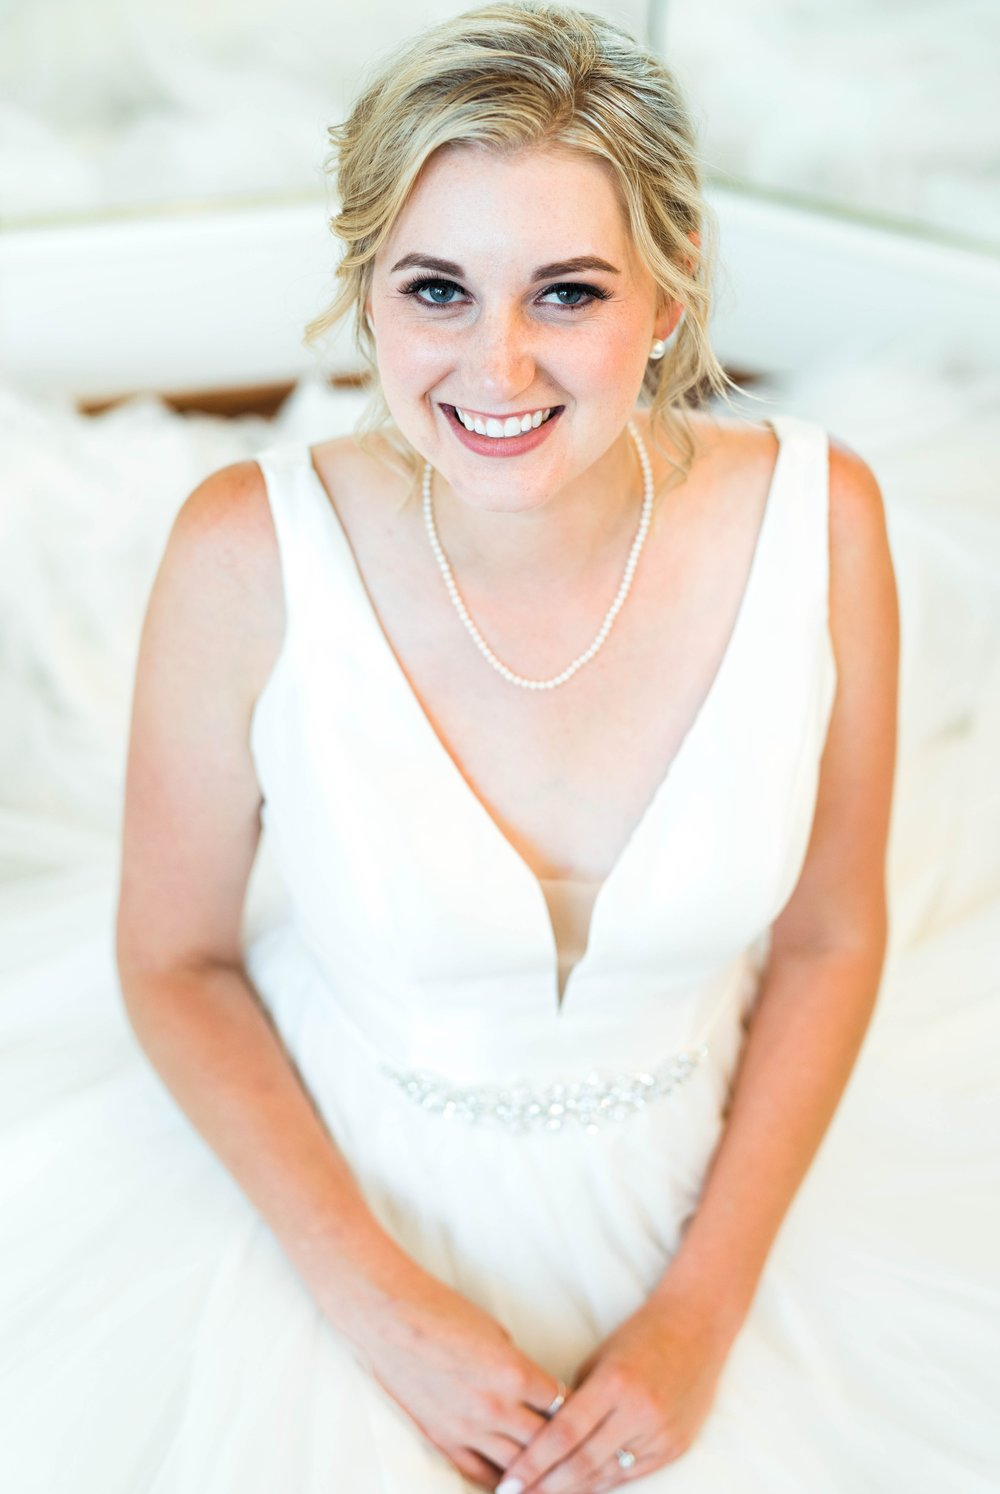 westmanorestate_entwinedevents_lynchburgweddingphotographer_Virginiaweddingphotographer_kateyam 14.jpg